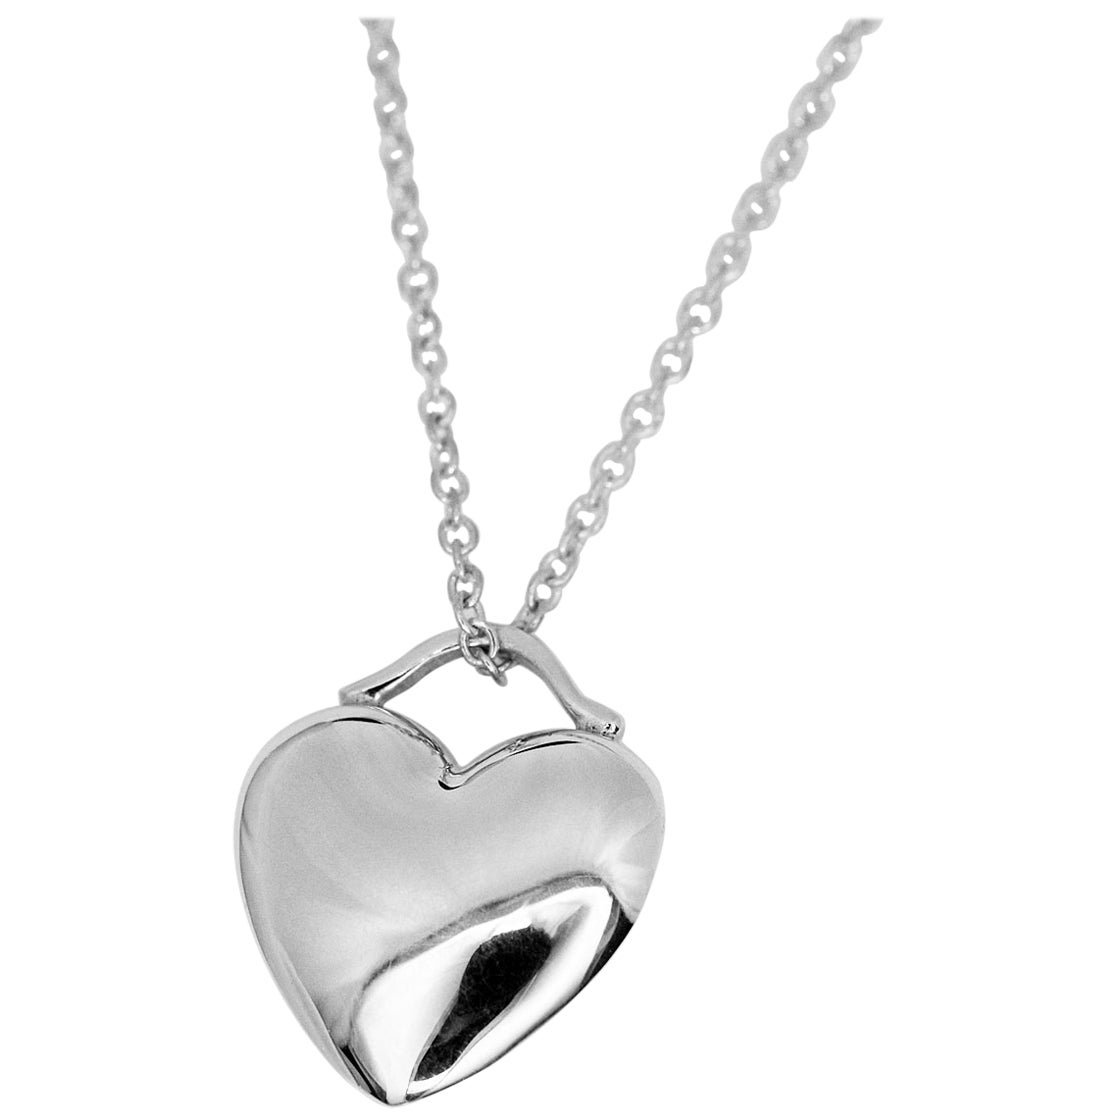 Tiffany & Co. Sterling 925 Silver Heart Pendant Necklace